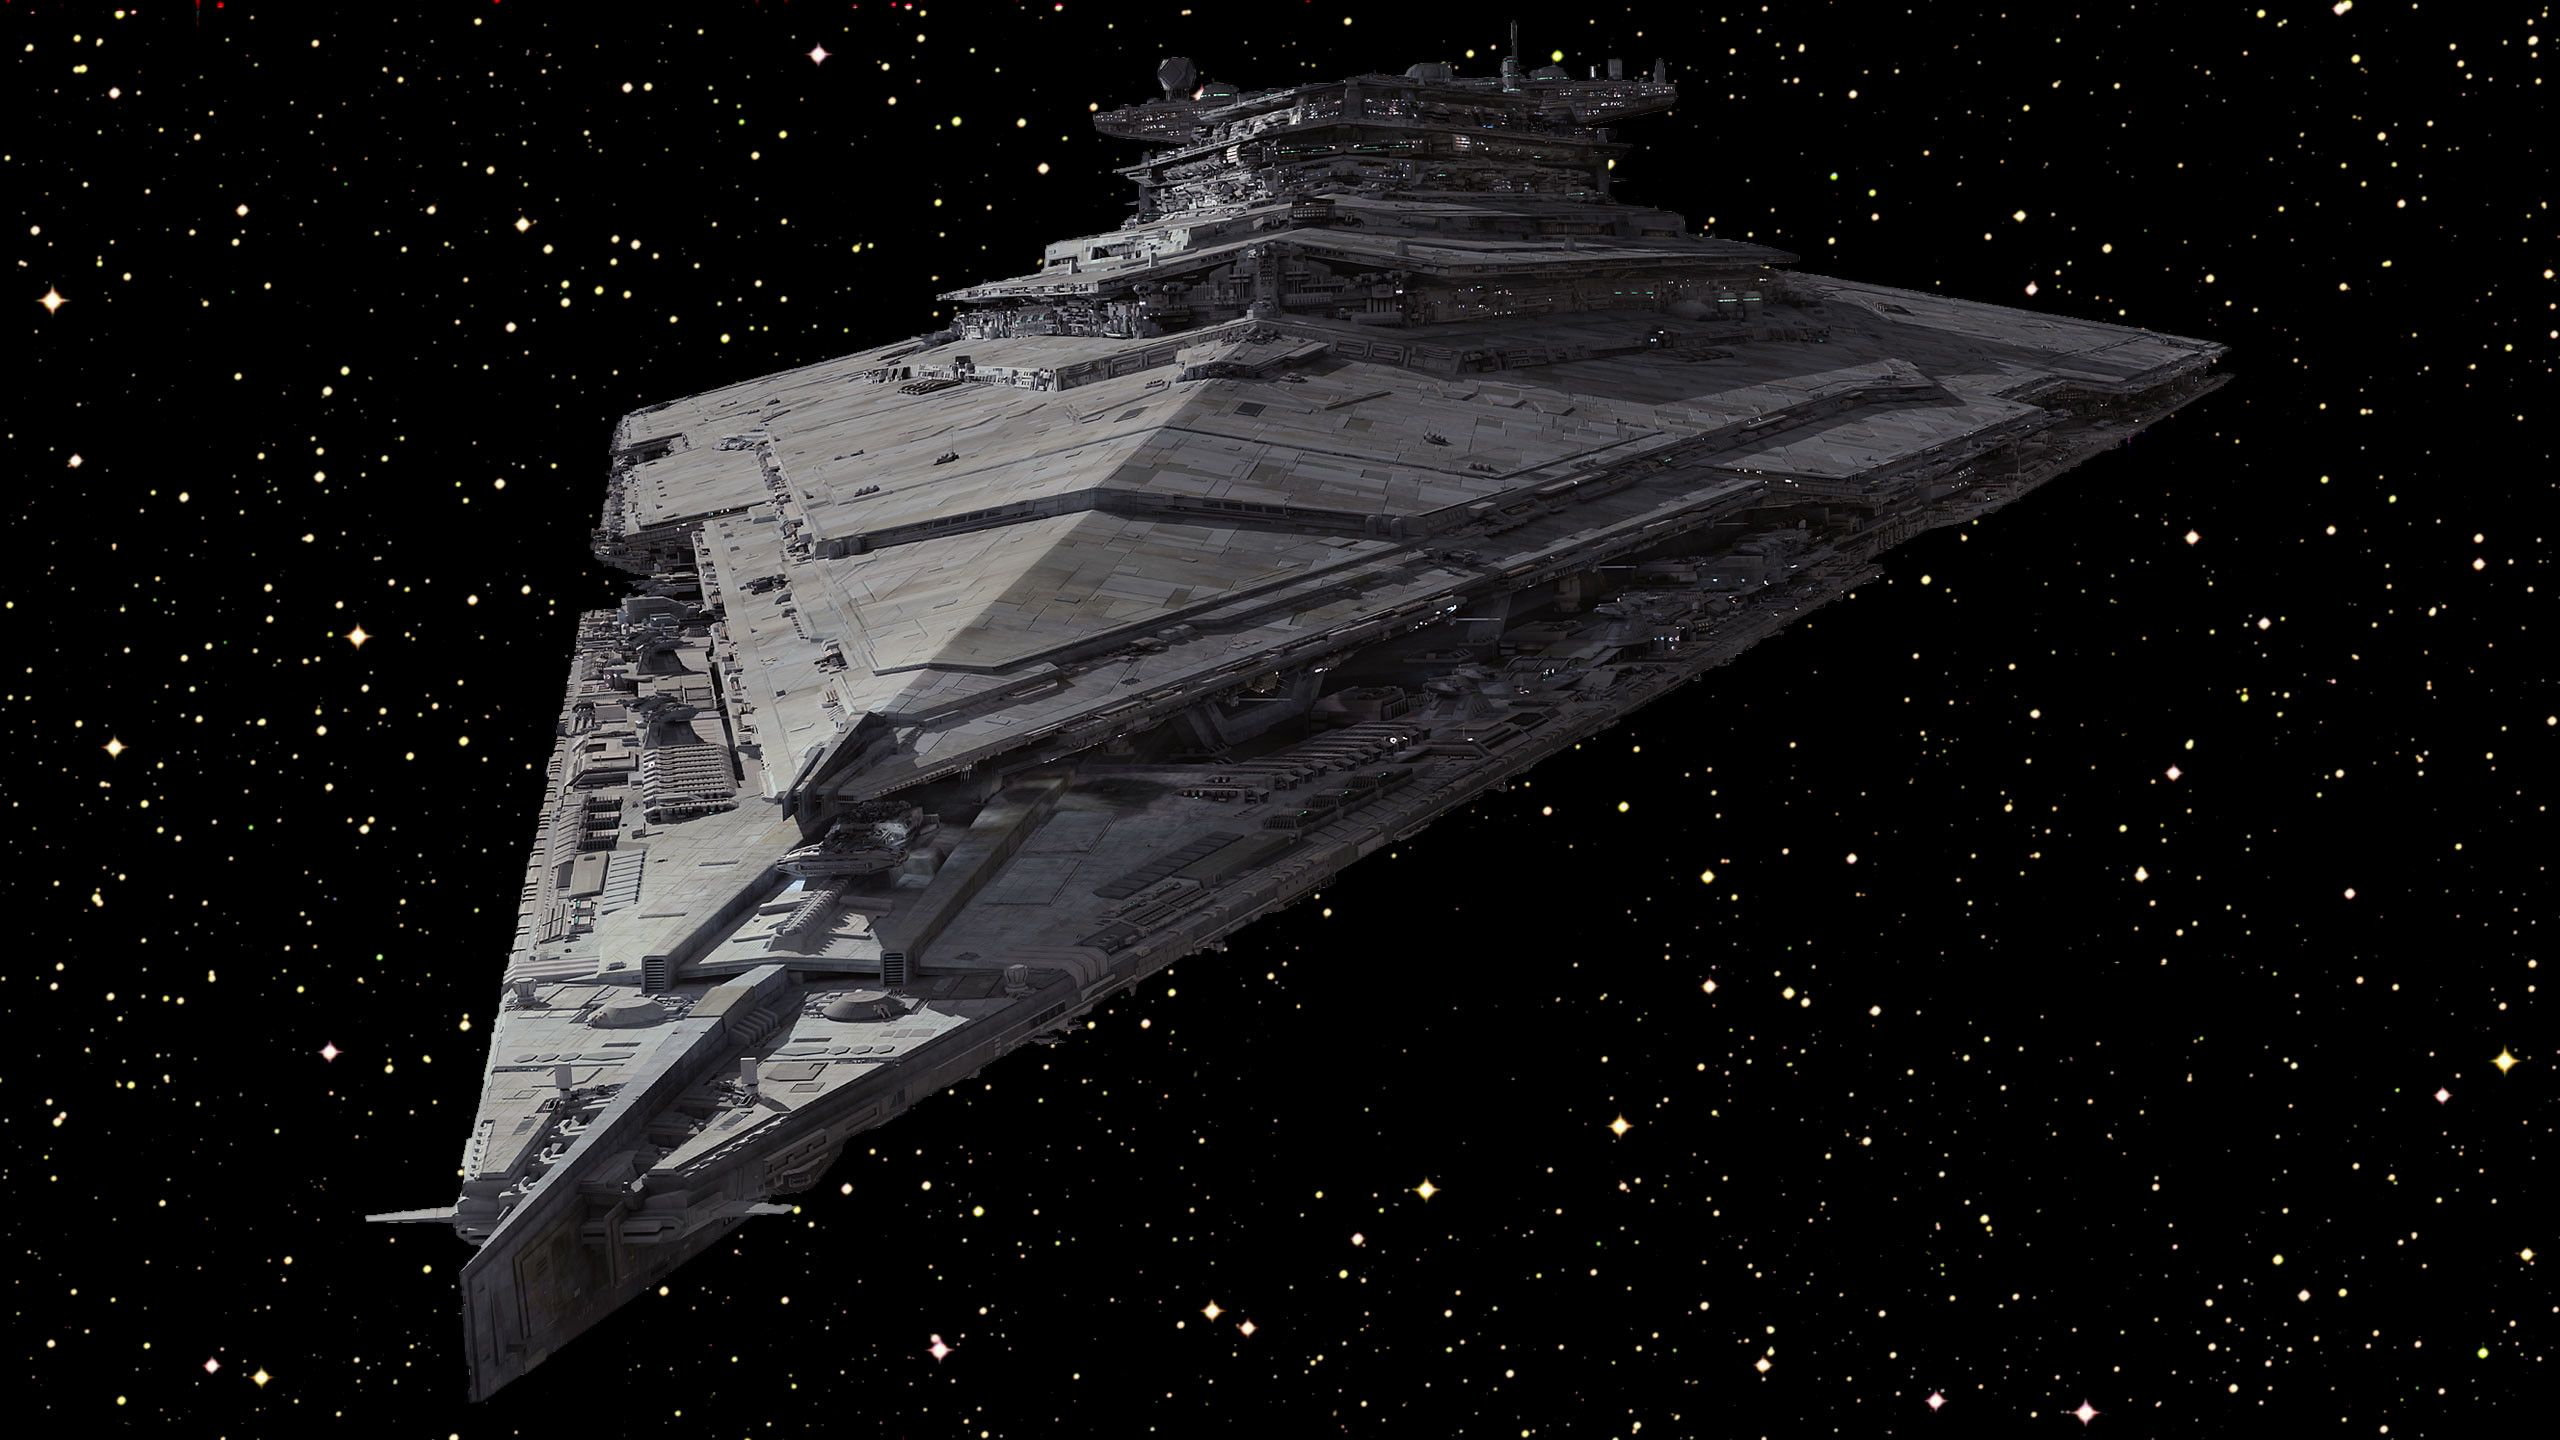 Imperial Star Destroyer Wallpapers On Wallpaperdog